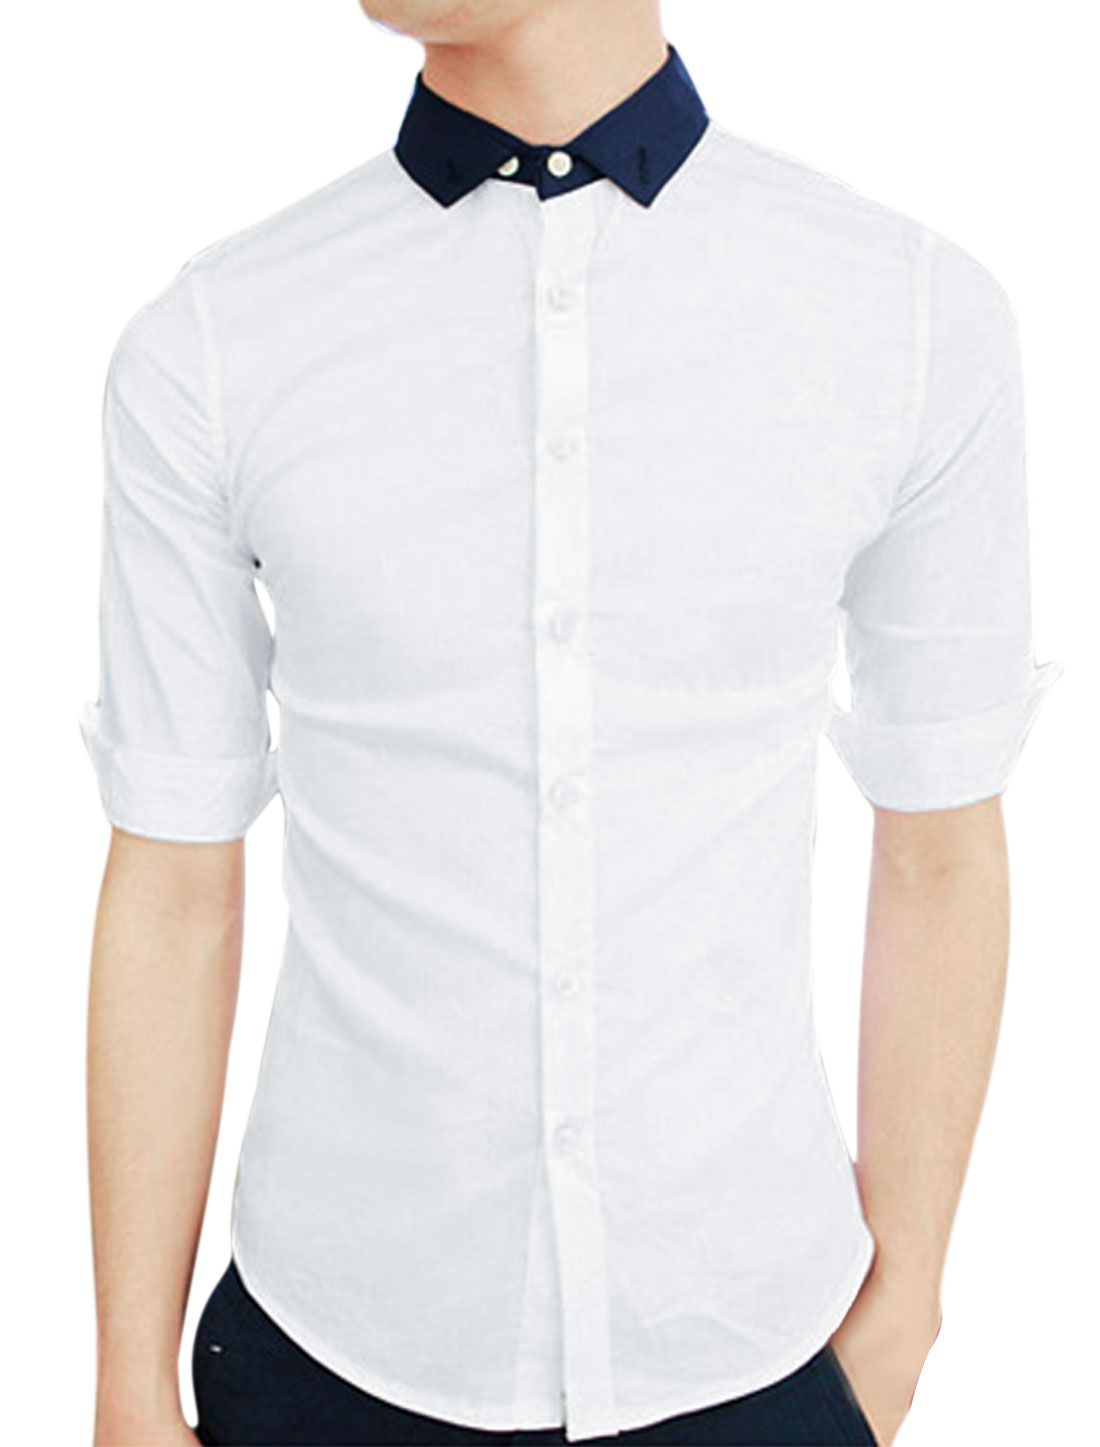 Man Convertible Collar Single Breasted Buttoned Cuffs Shirt White M